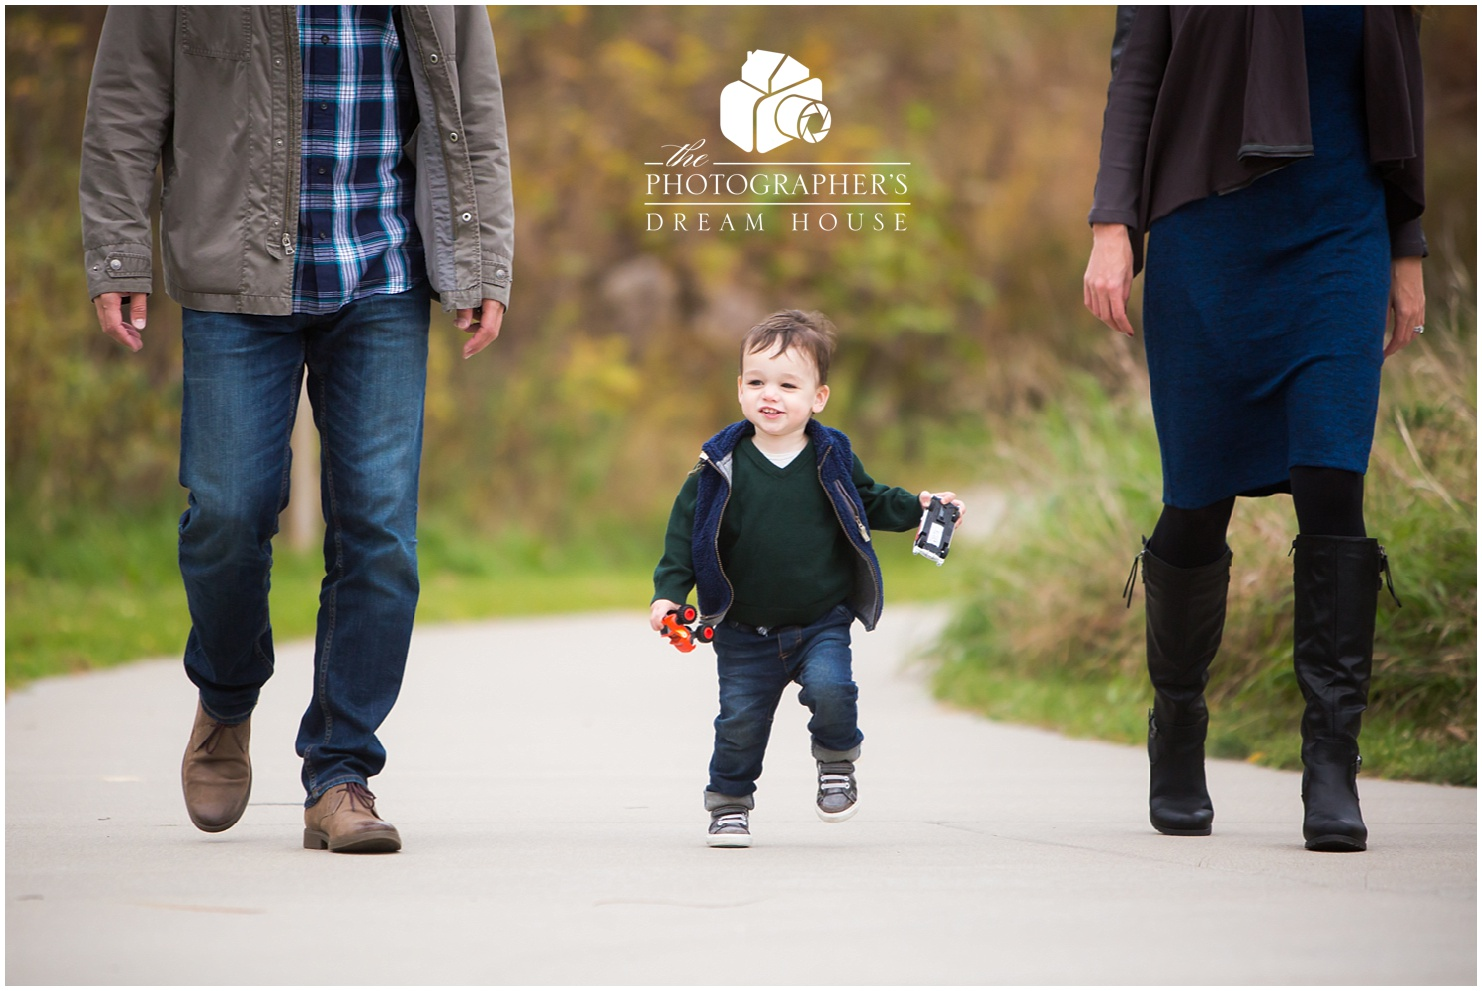 Photographing Toddlers